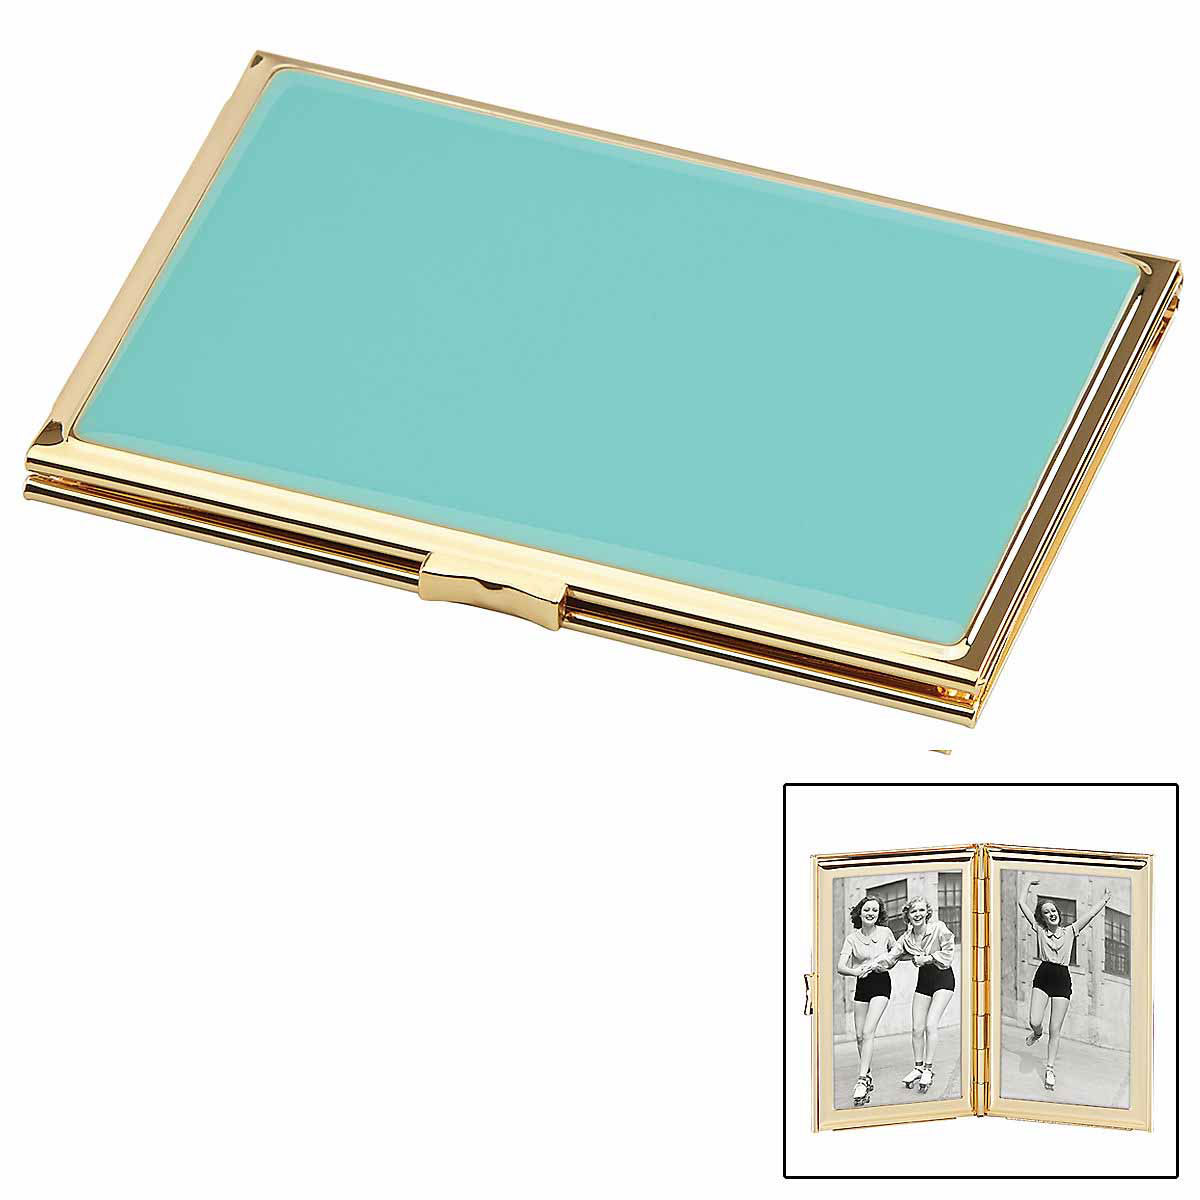 Kate Spade New York, Lenox Outpost Gifting Hinged Pocket Frame, Turquoise